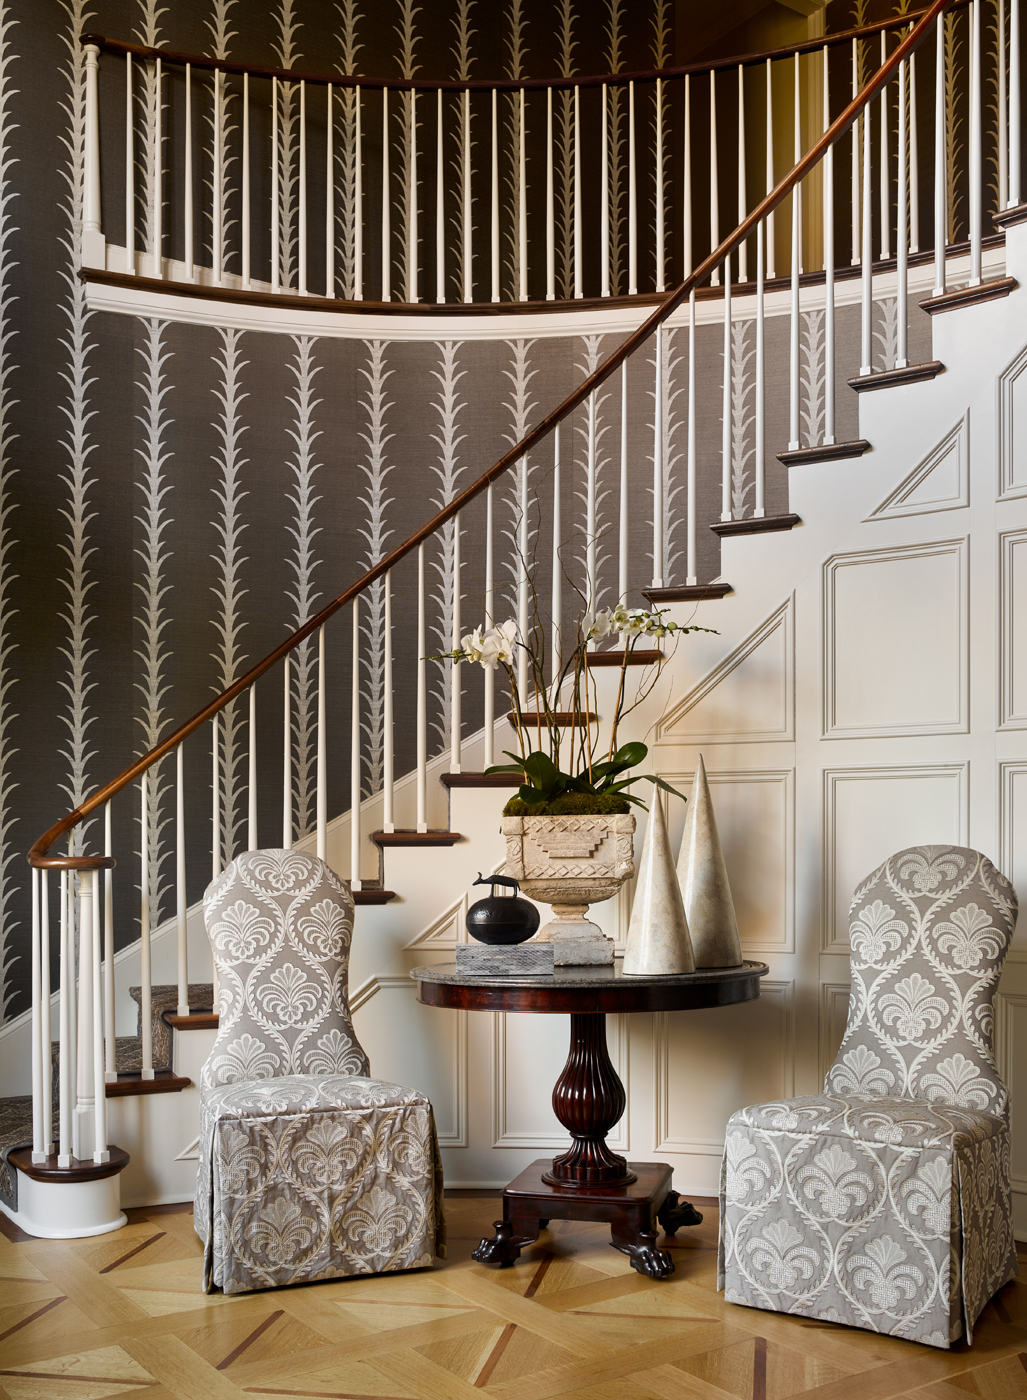 Entryway and curved staircase with Schumacher Acanthus Stripe wallpaper & parquet wood floors | Savage Interior Design